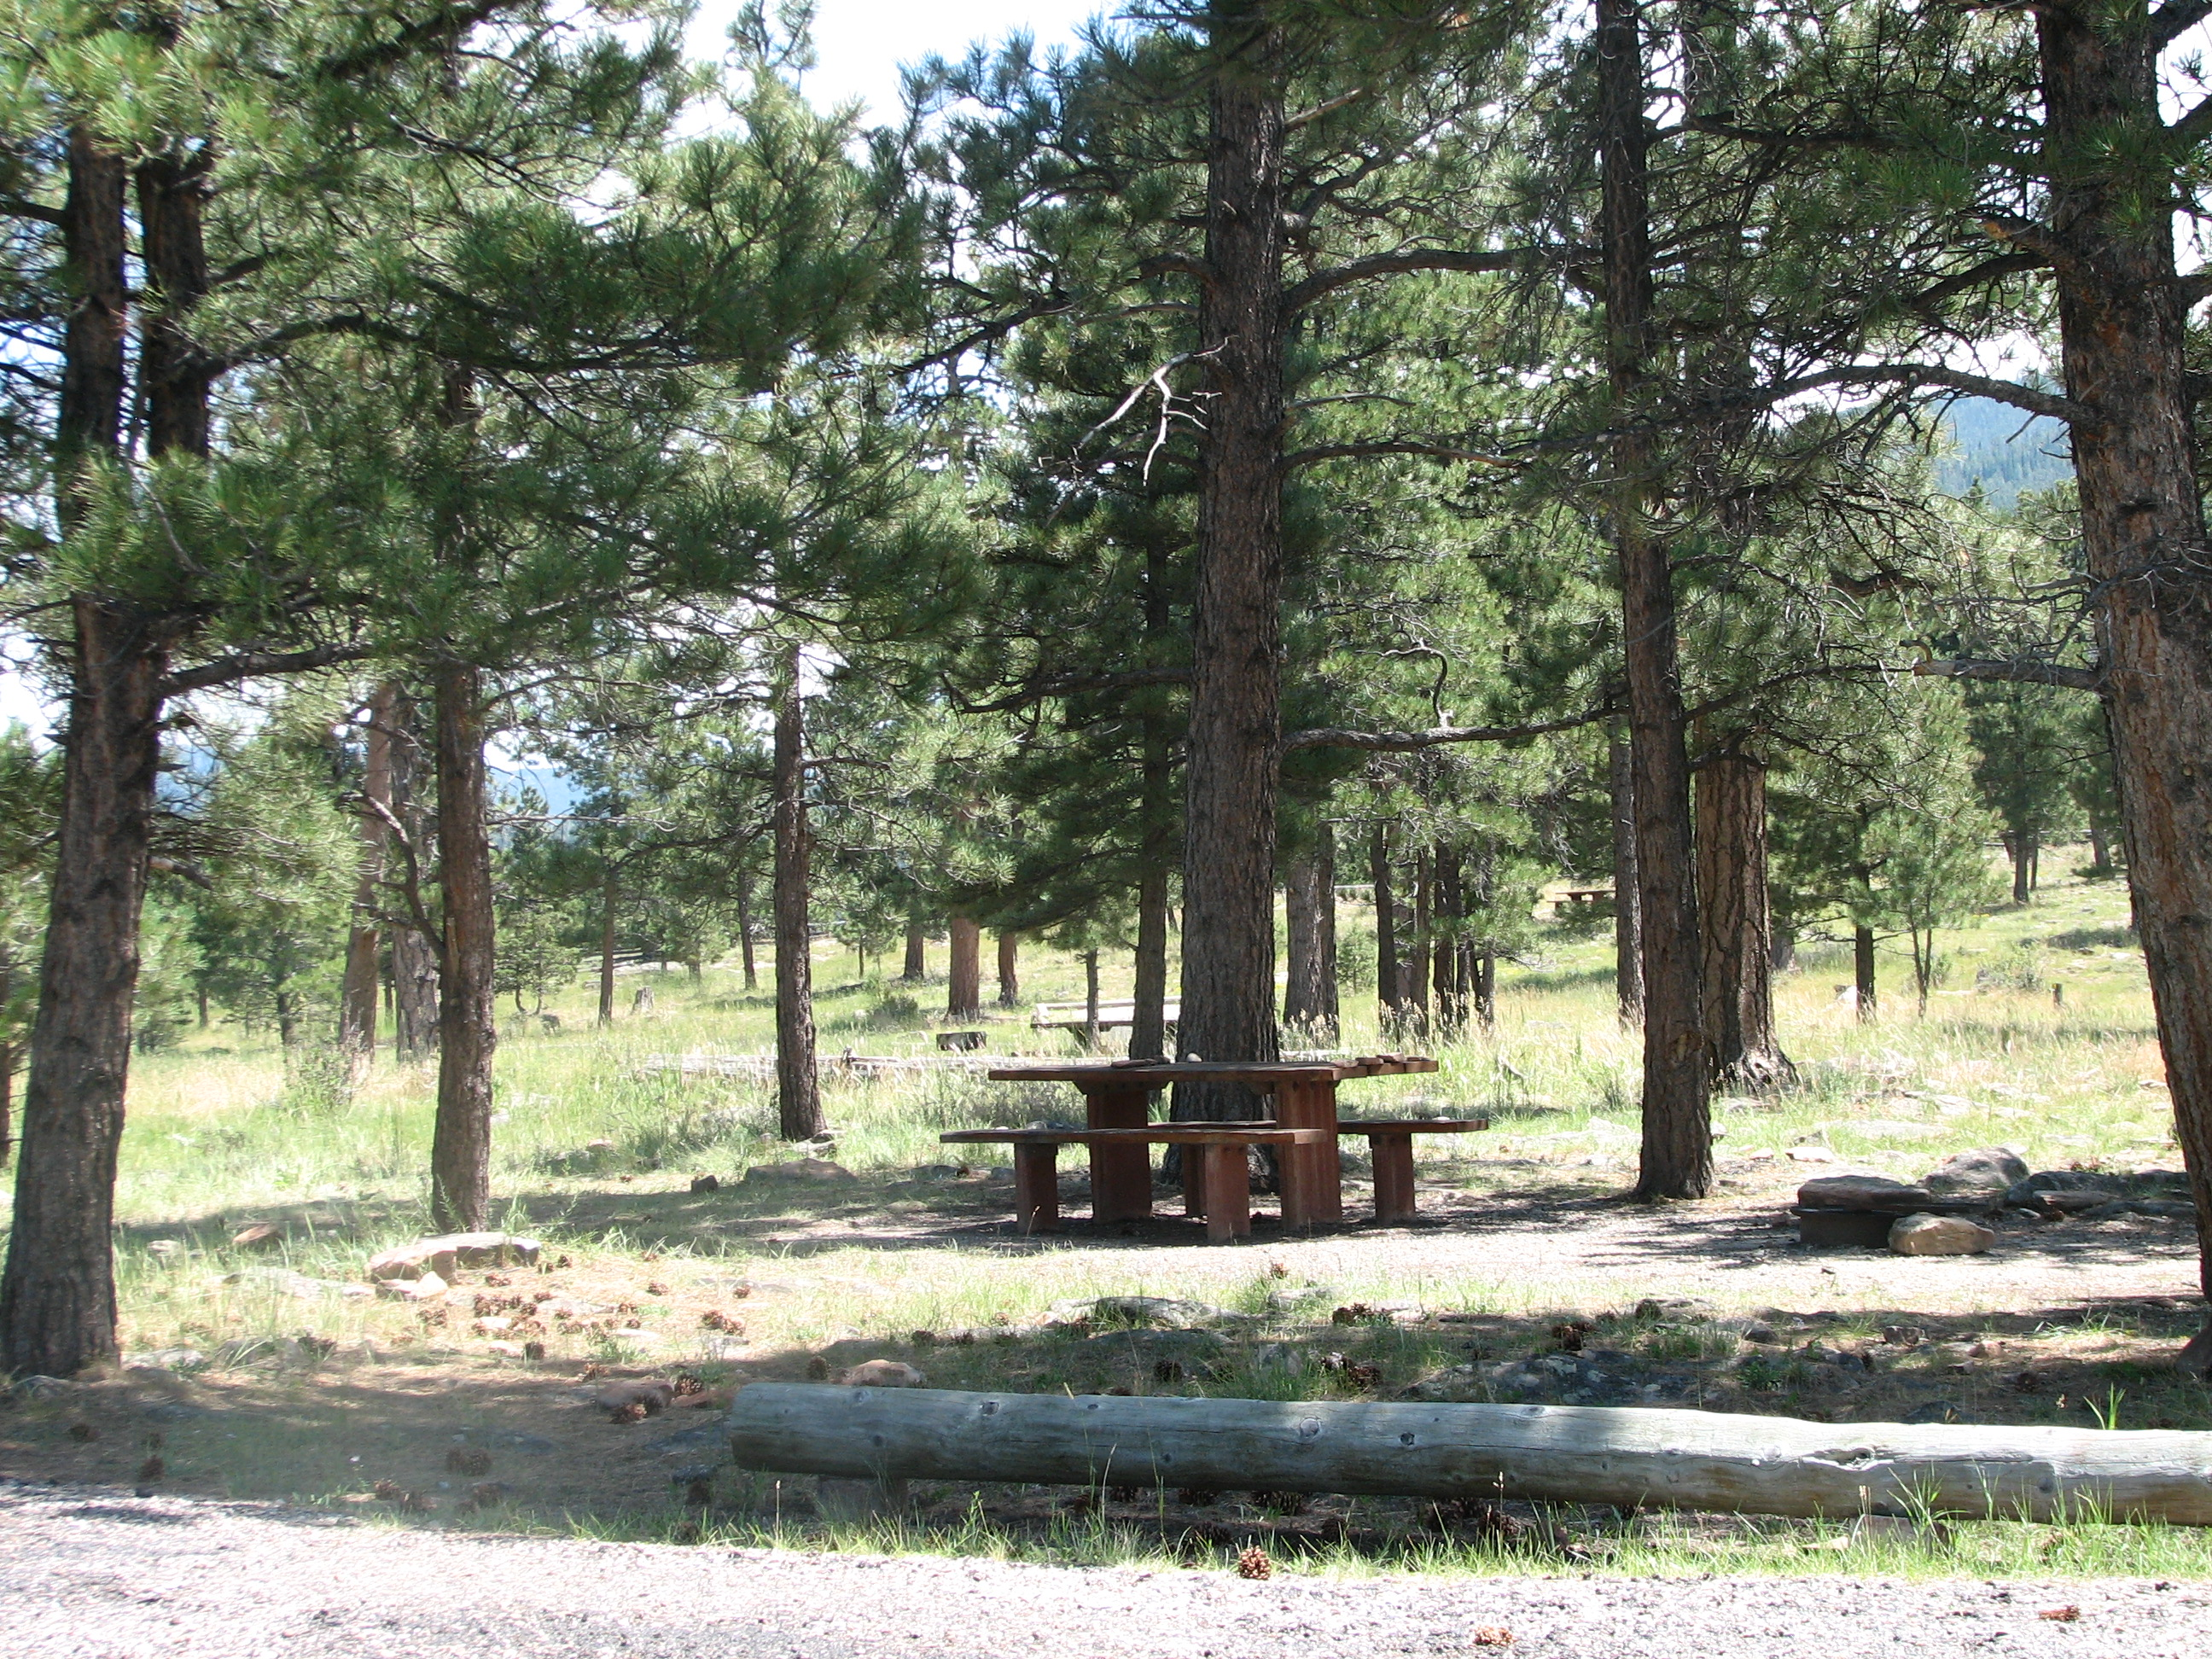 Photo of a site at the Red Canyon Campground.